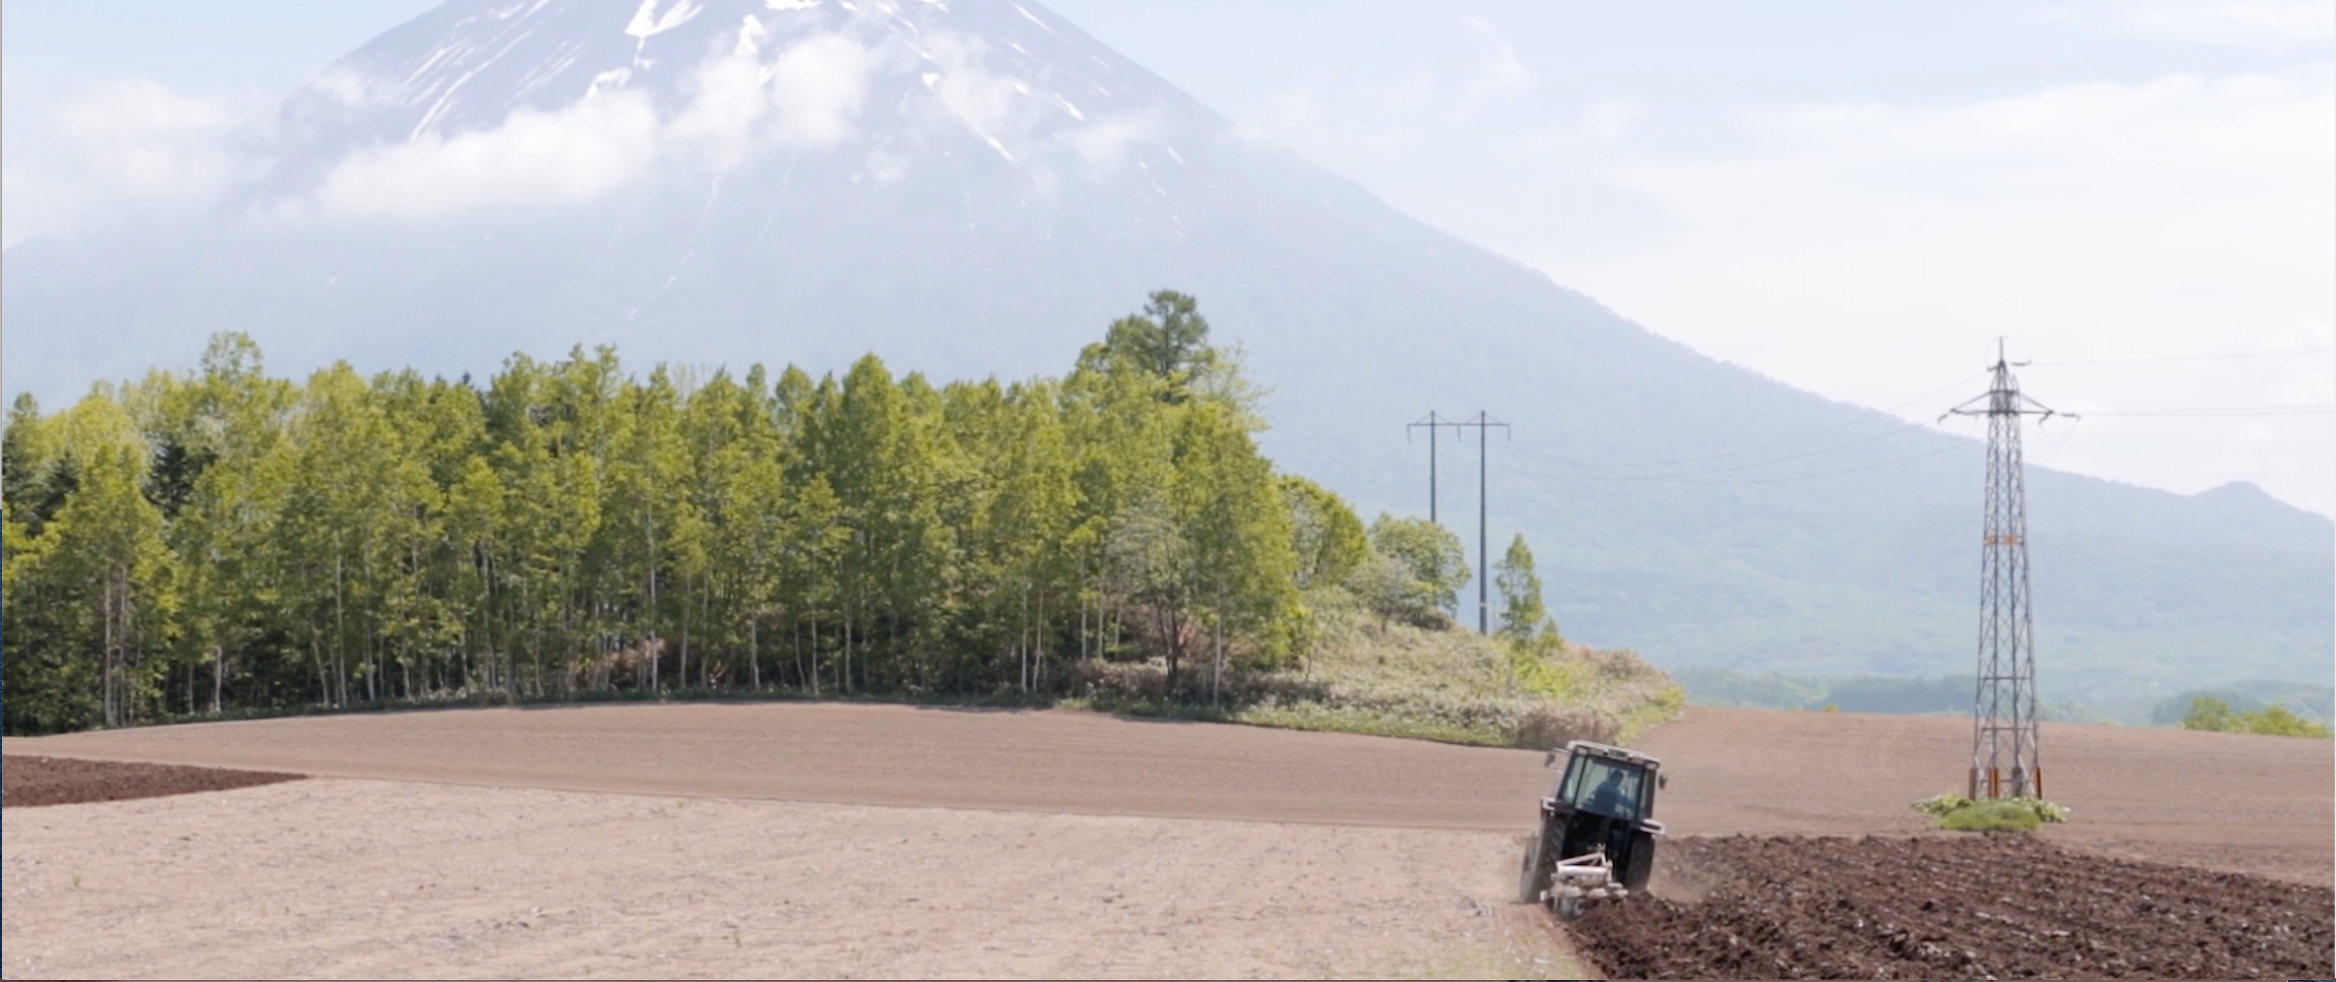 Tractor working on a field with a mountain in the background.